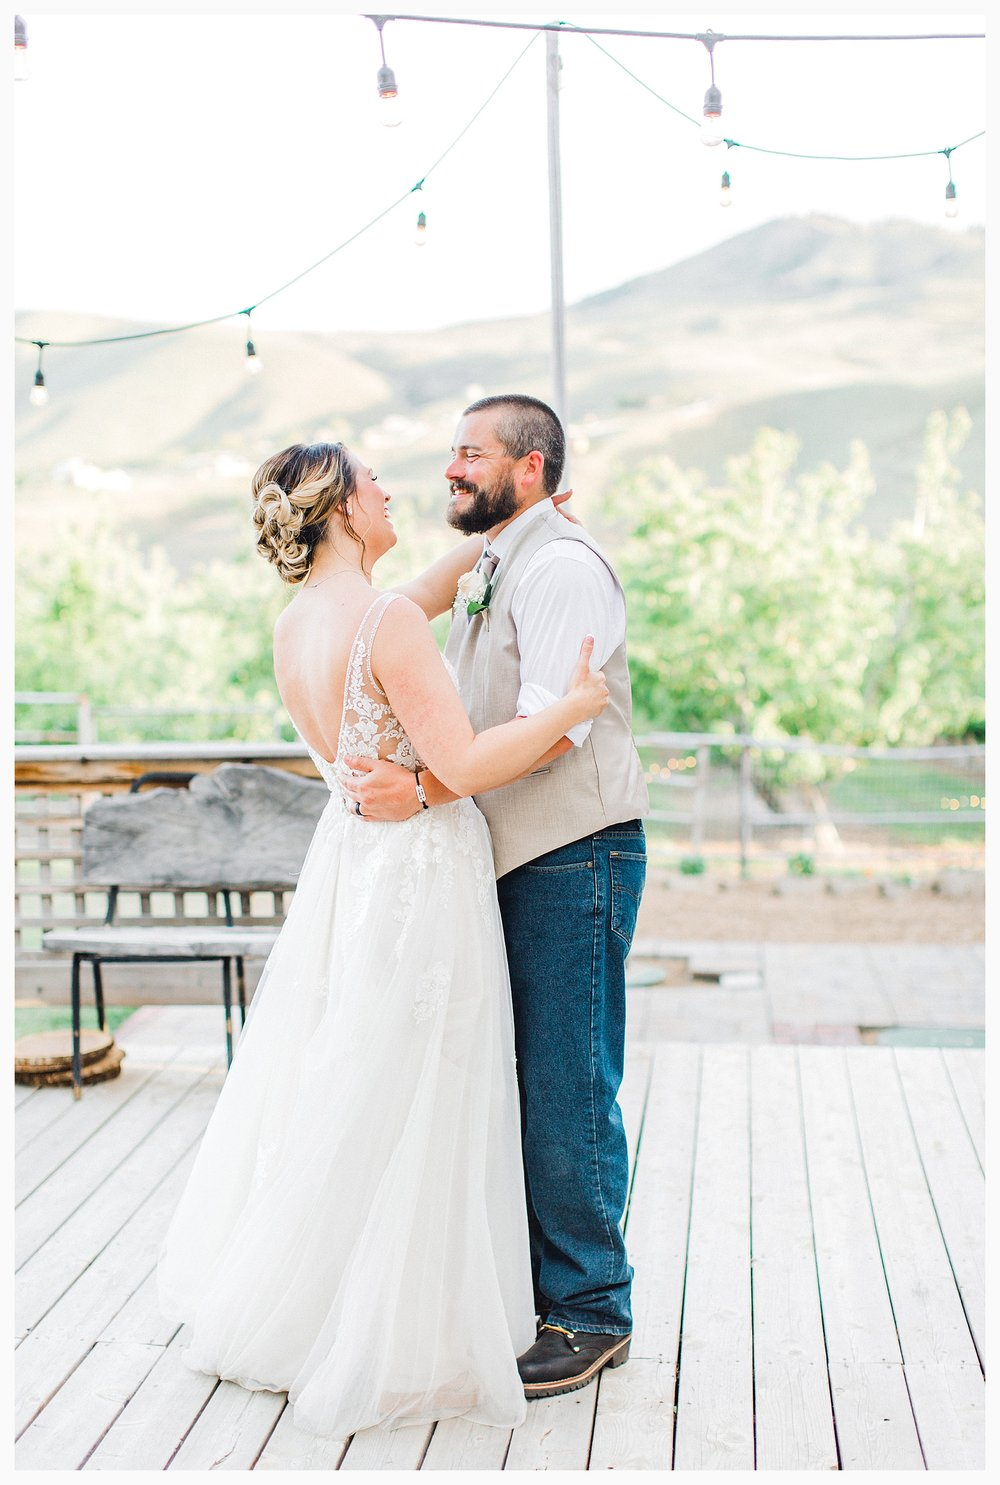 Rustic barn wedding in Wenatchee Washington at Sunshine Ranch on Easy Street, Emma Rose Company Seattle PNW Light and Airy Wedding Photographer_0103.jpg